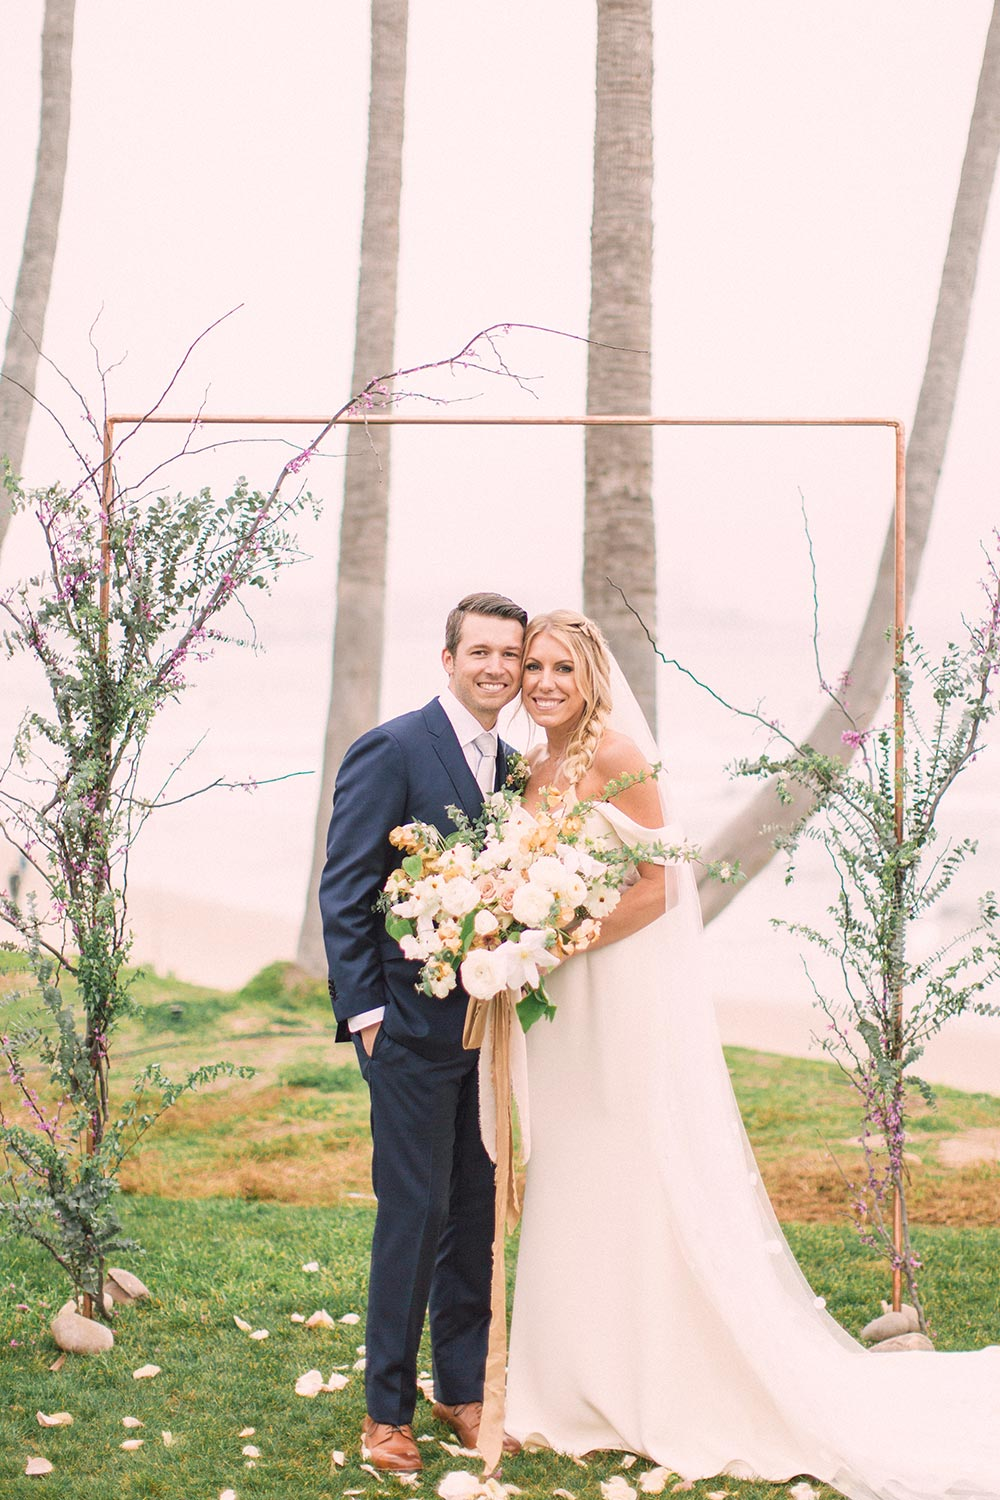 off the shoulder wedding dress and minimalist wedding ceremony arch with climbing greenery